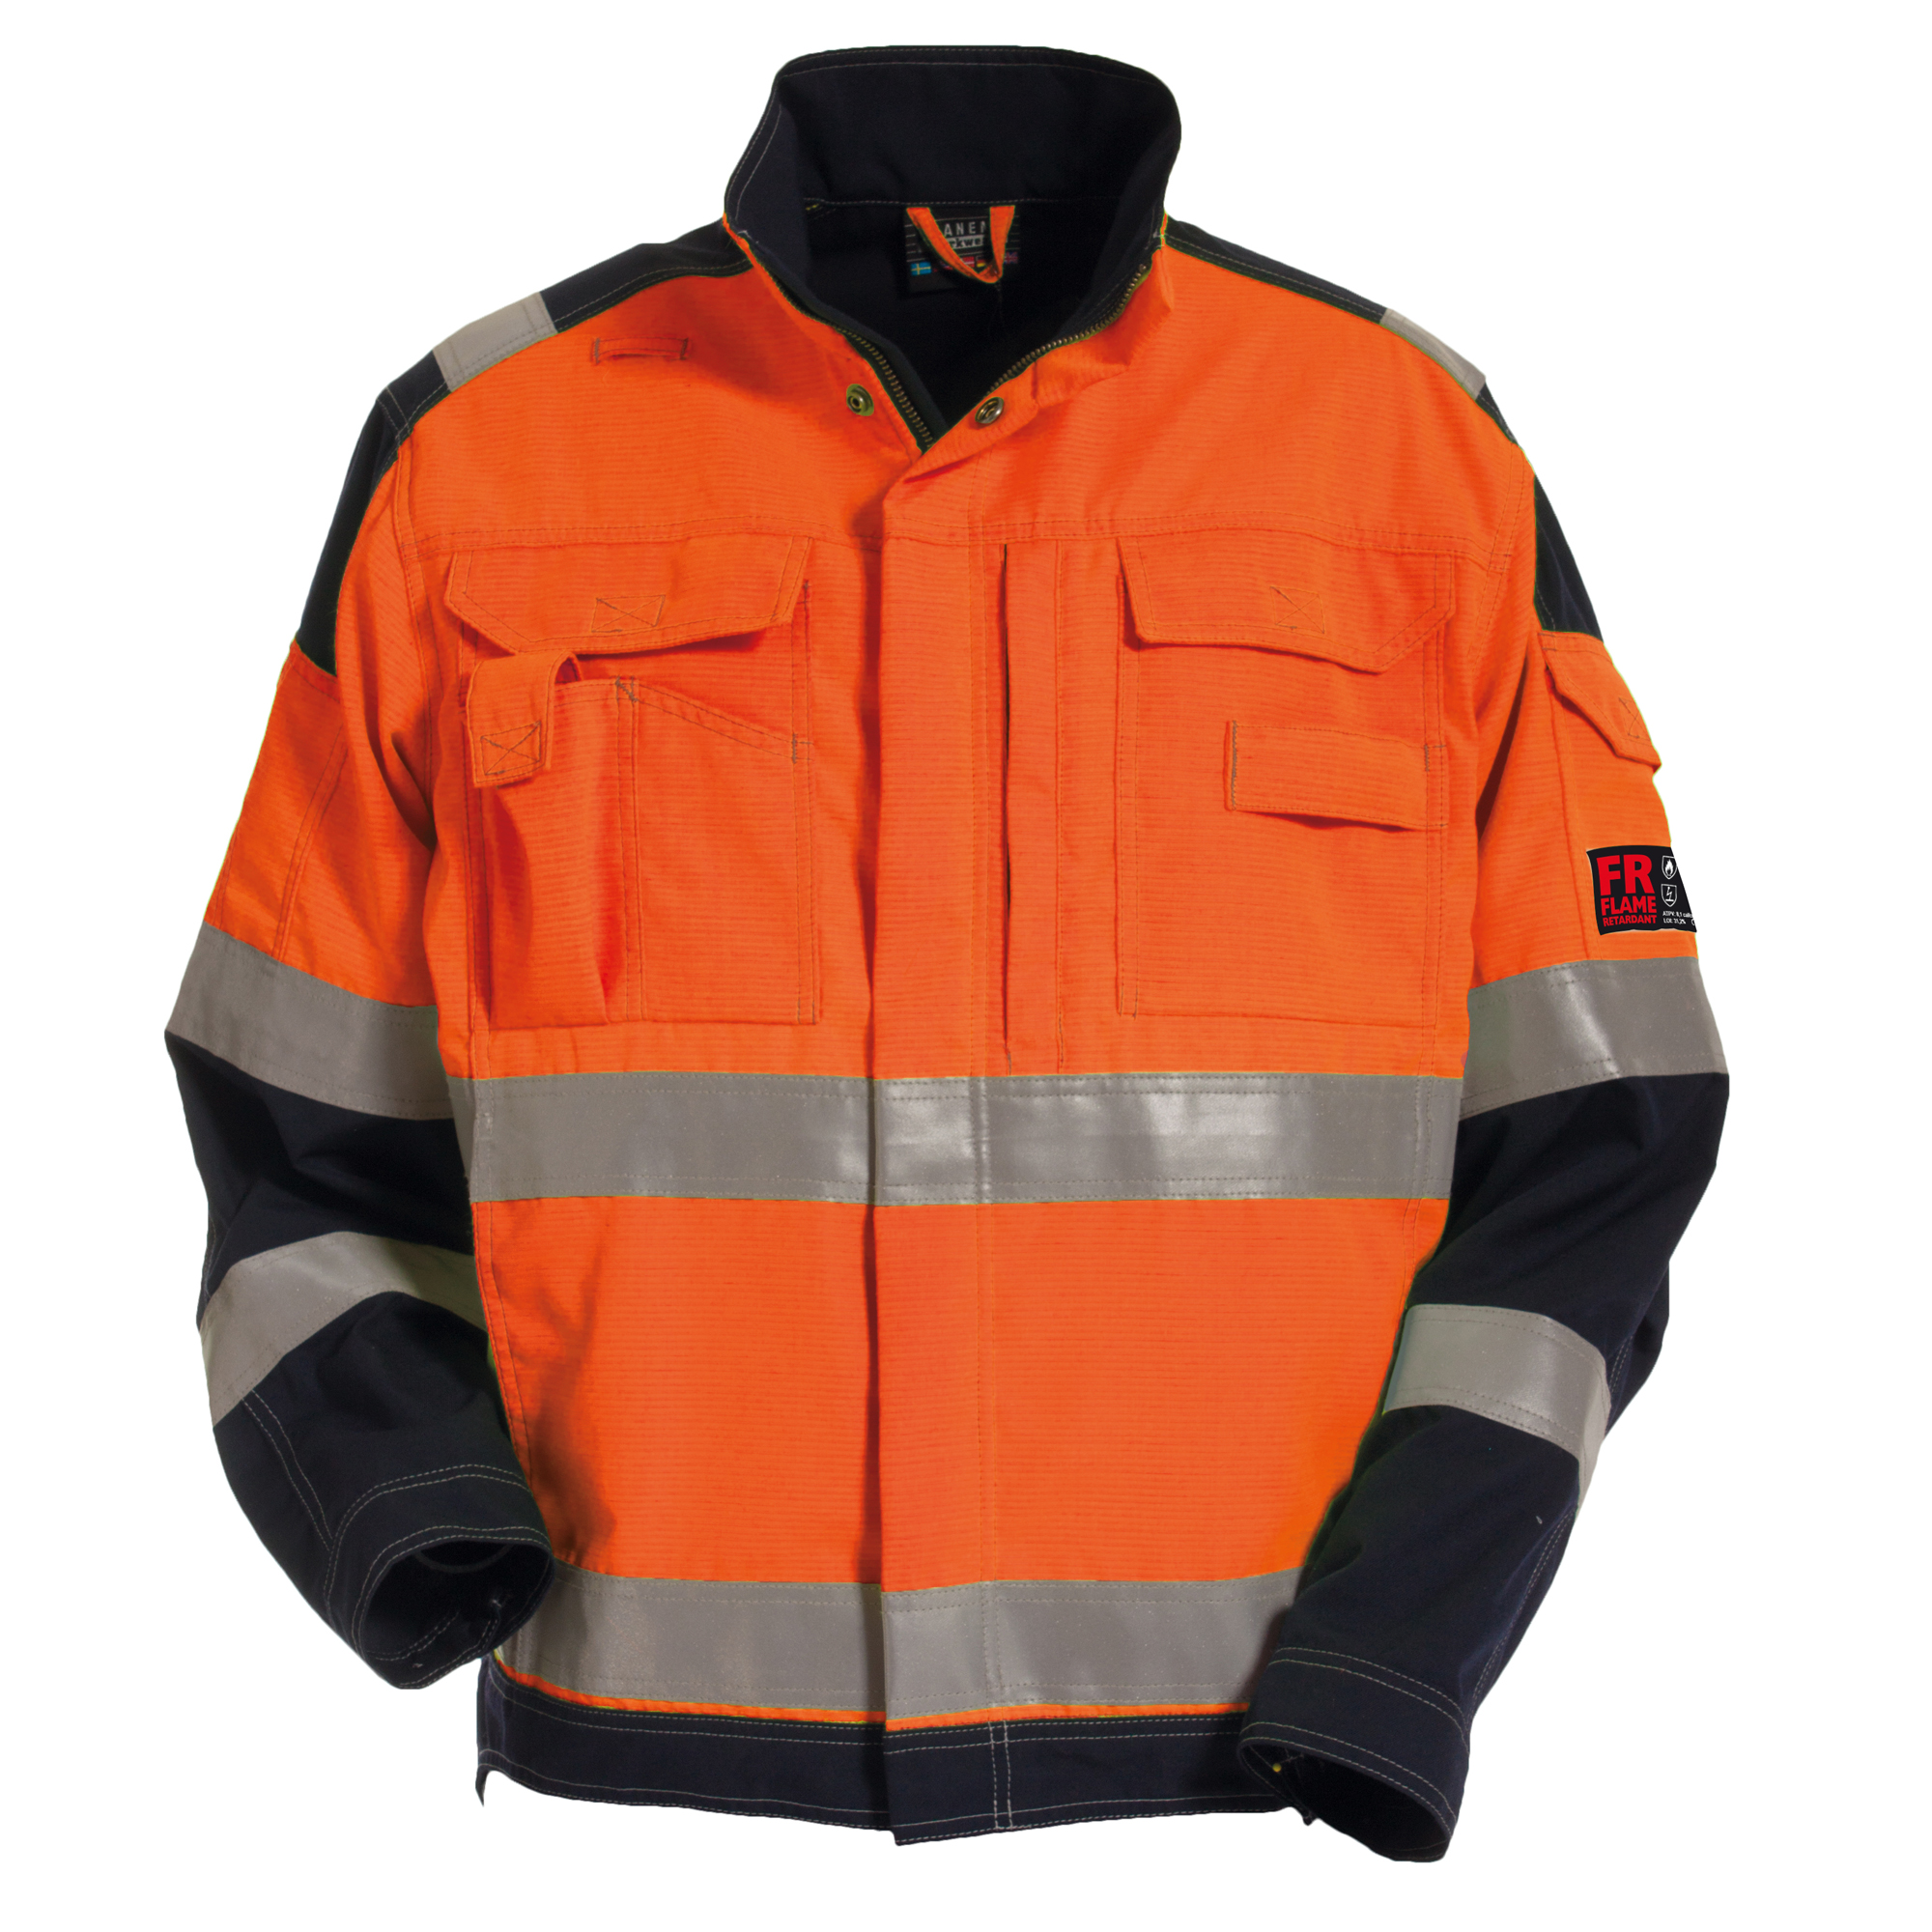 TRANEMO 5339 84 ARC FLASH JACKET - 10.1 CAL/CM²